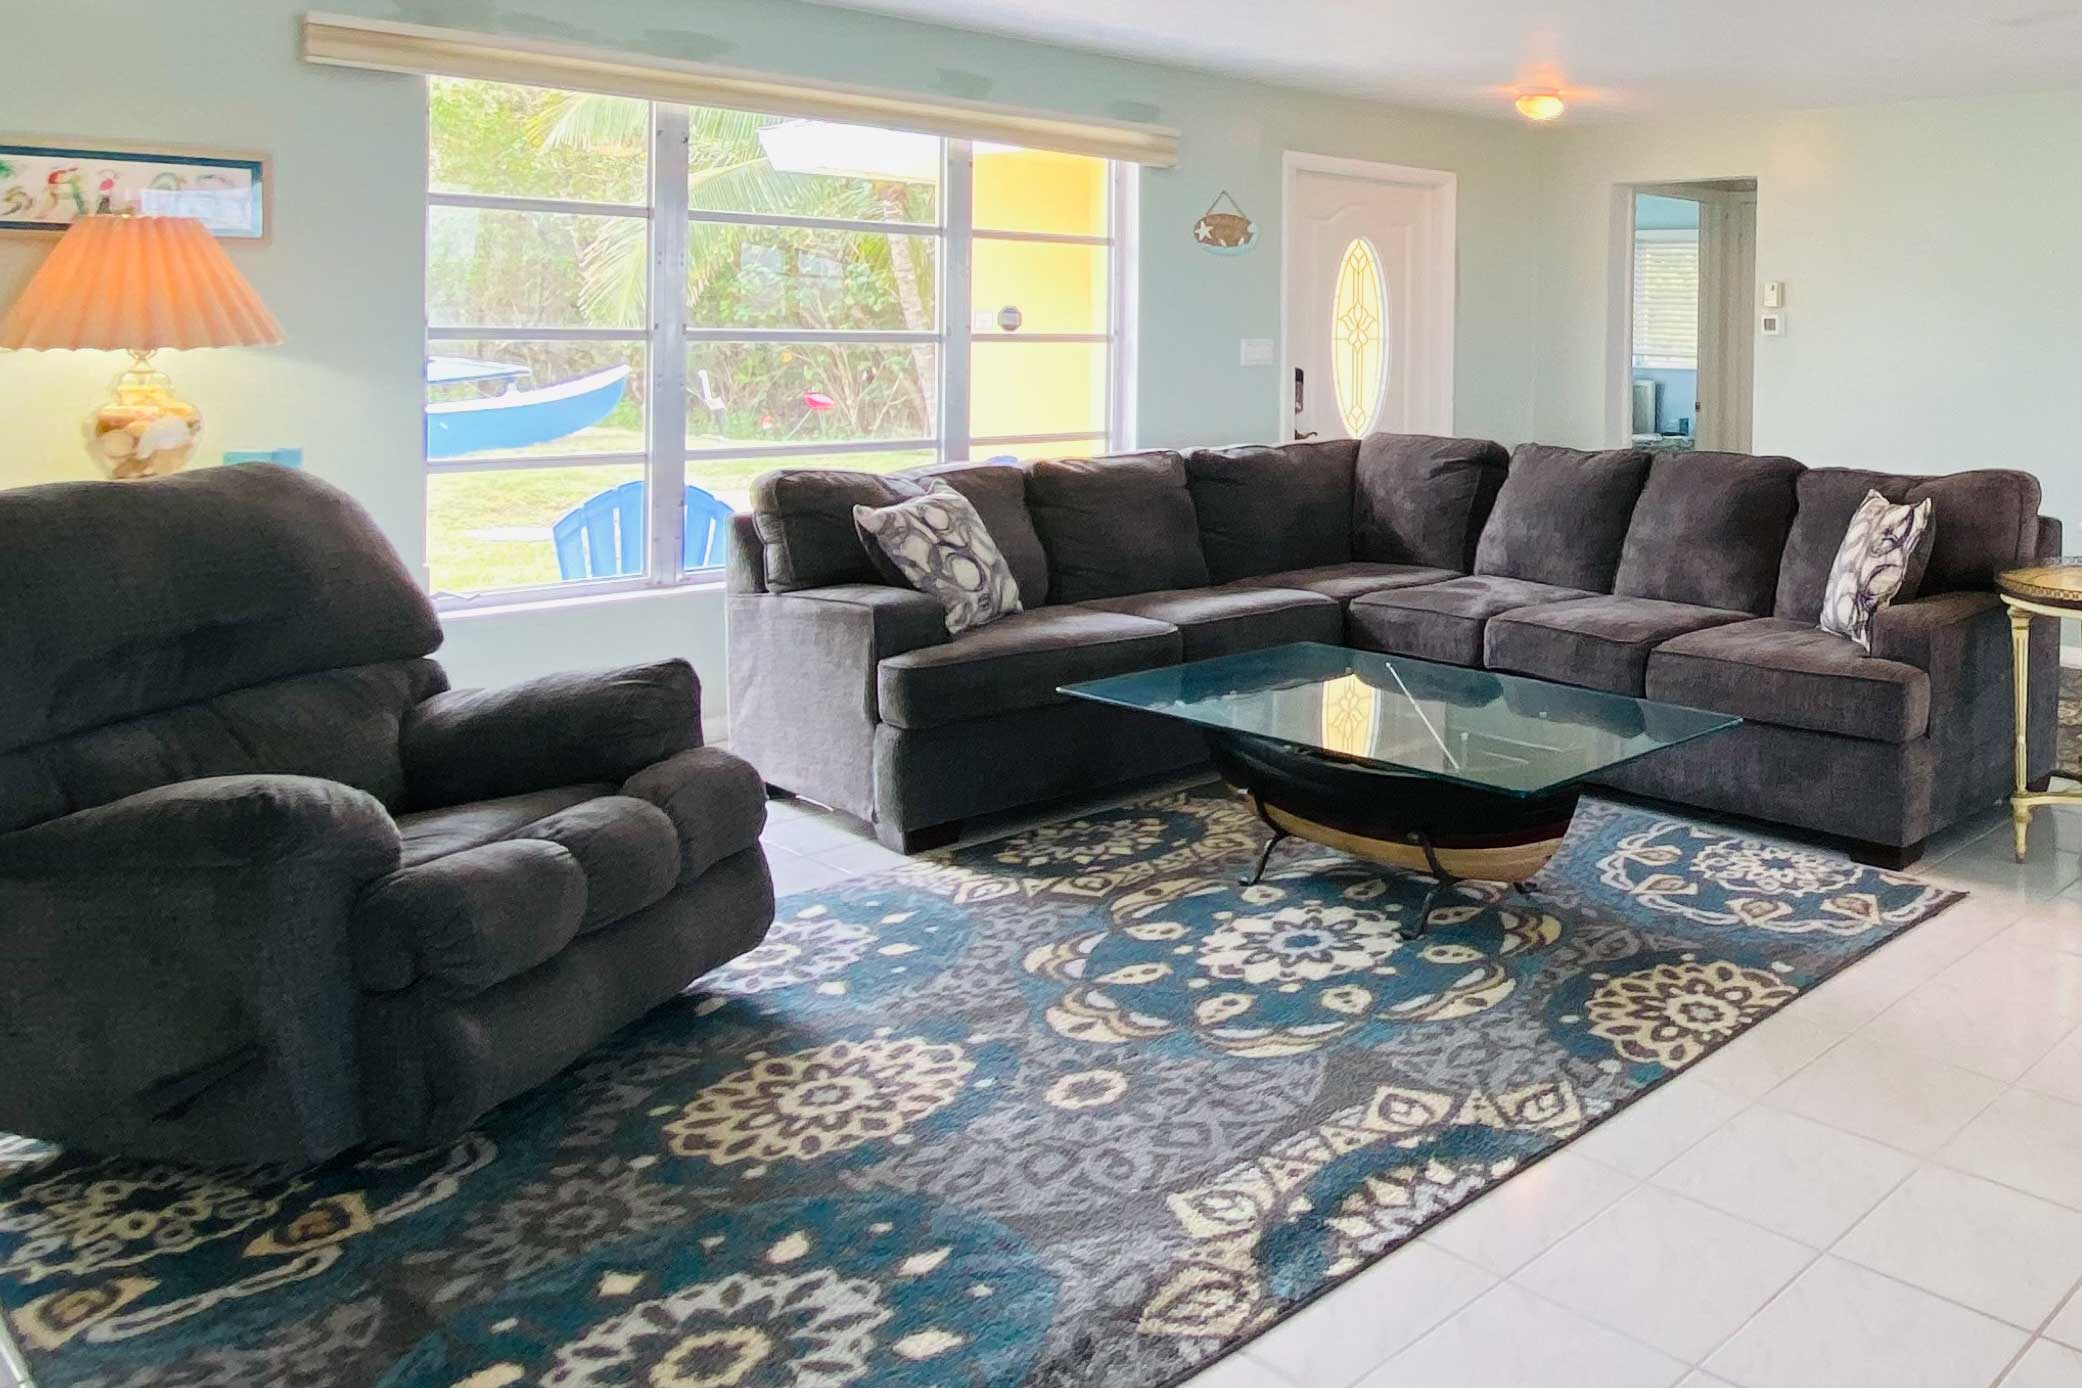 The living room has been updated with new furnishings!